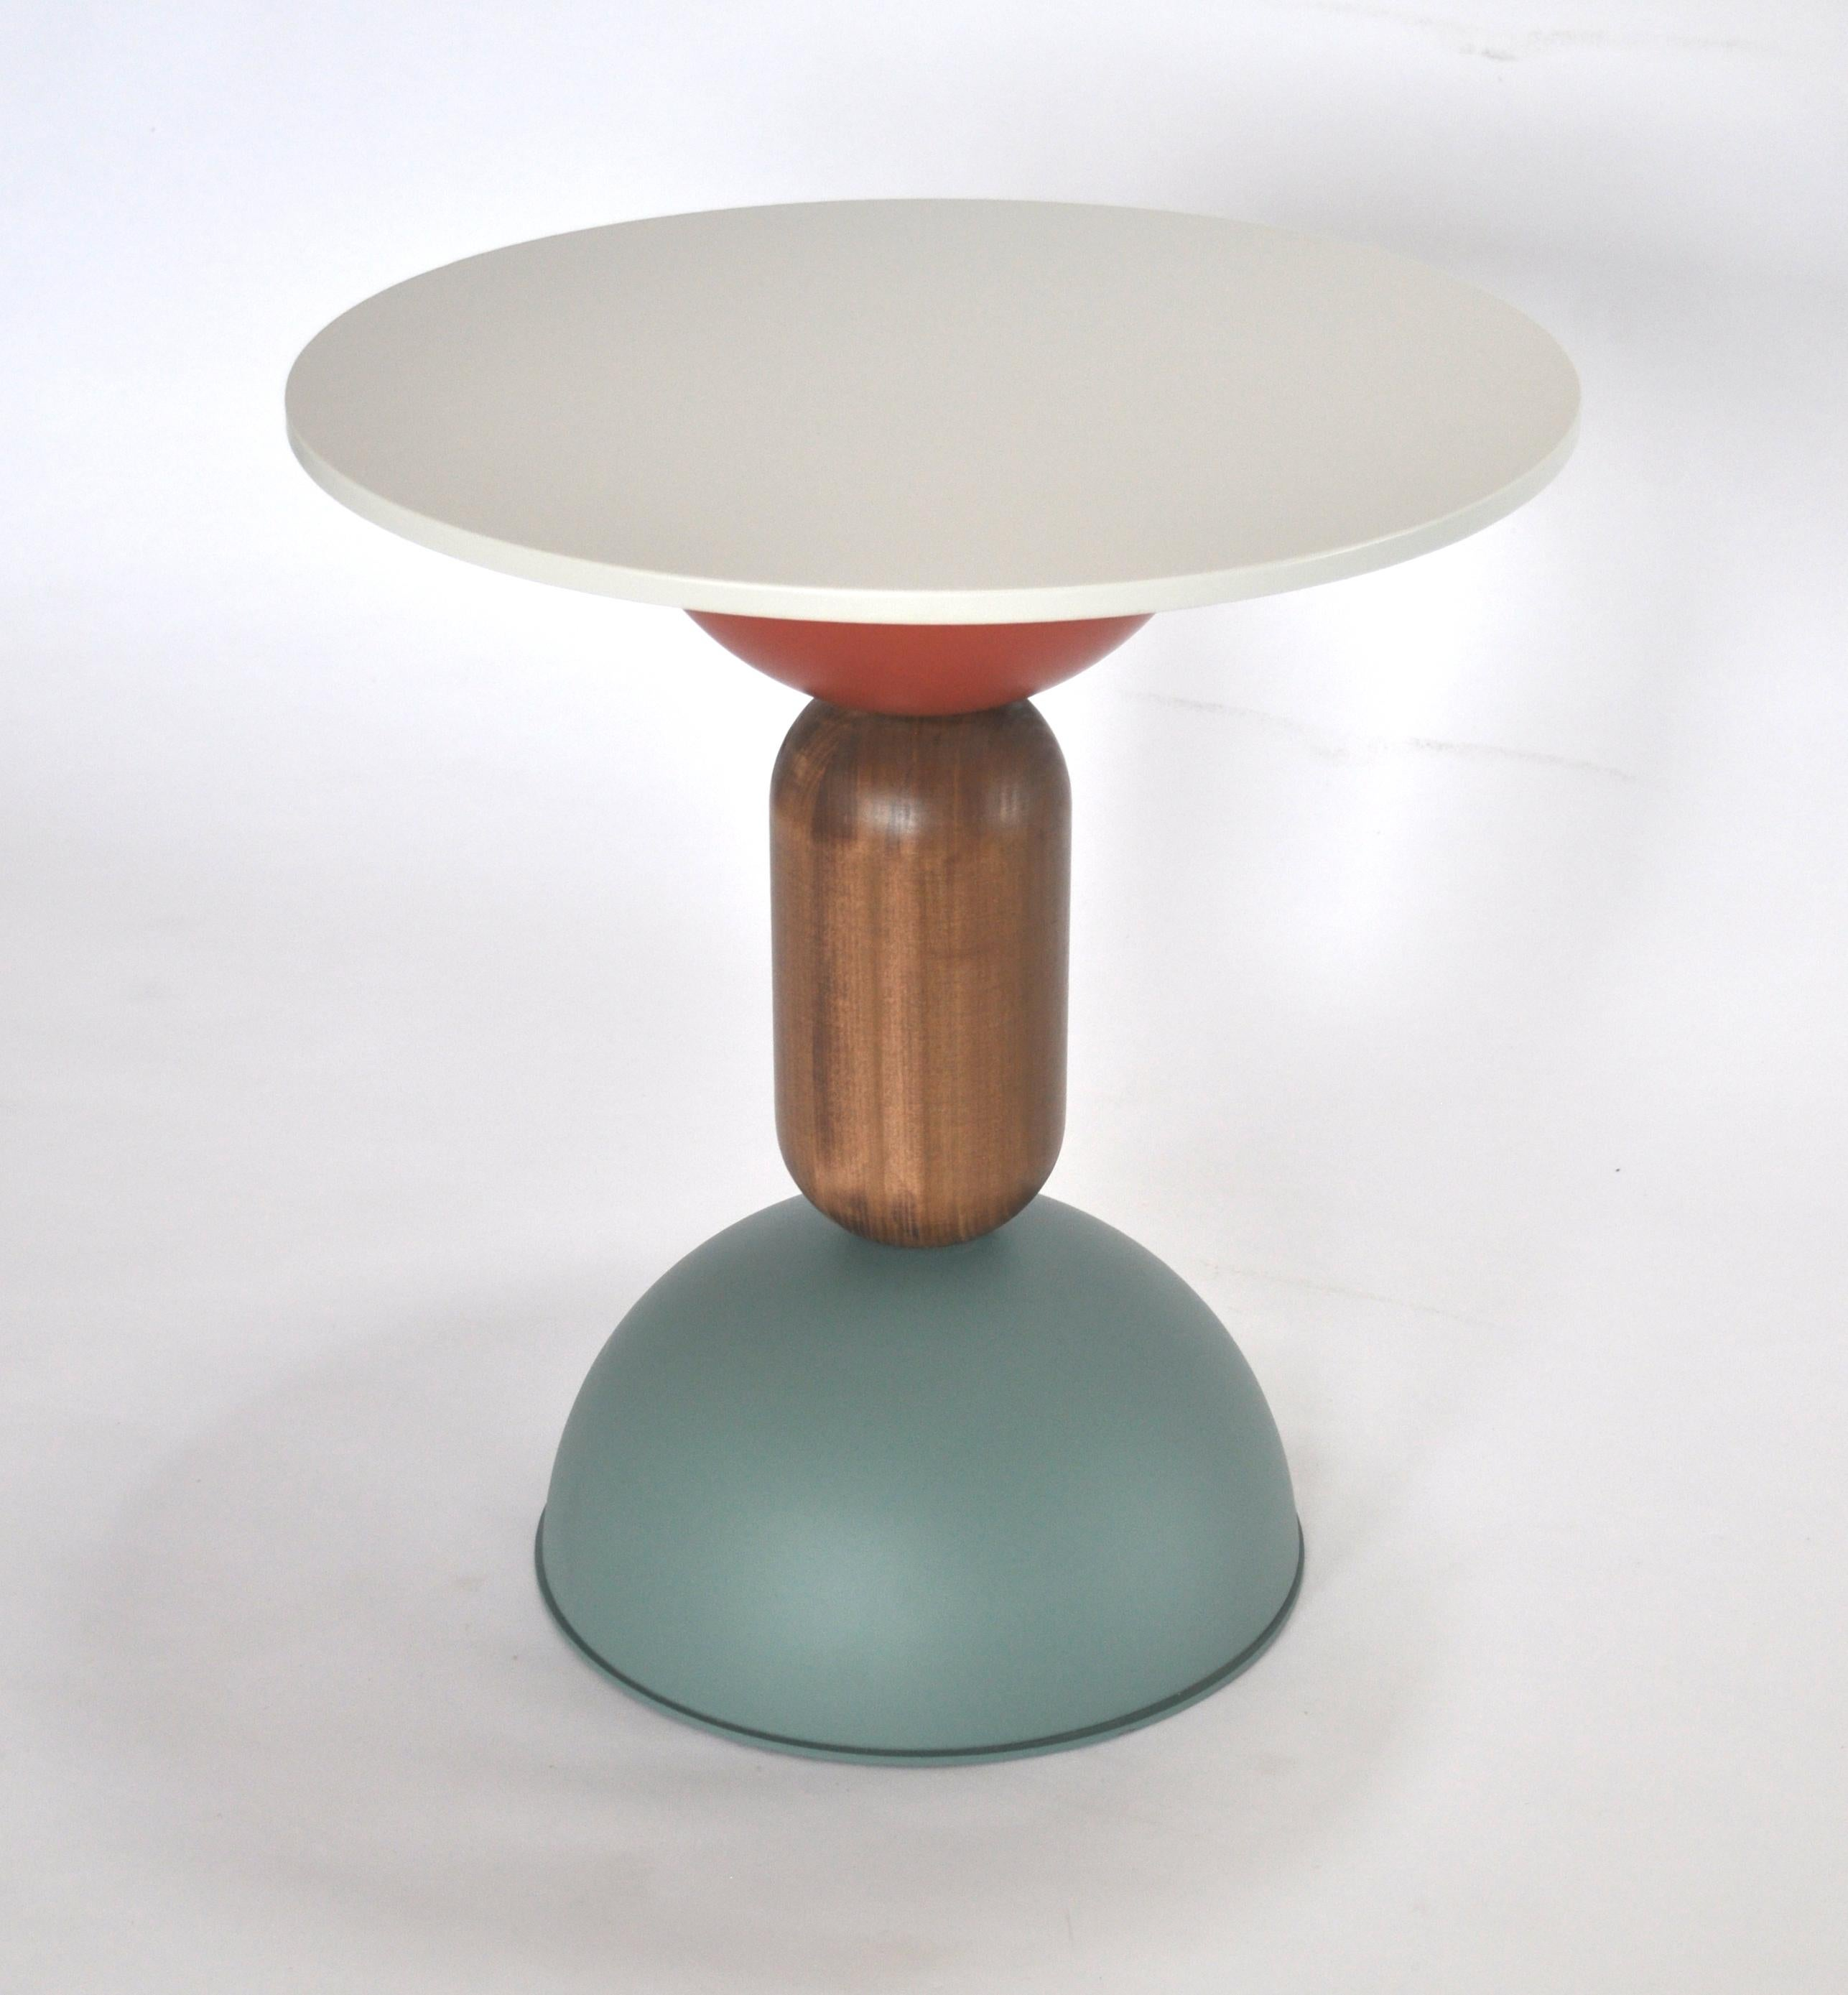 Armonie D Arredo Roma contemporary table, coffe table, side table and cocktail table metal and  wood